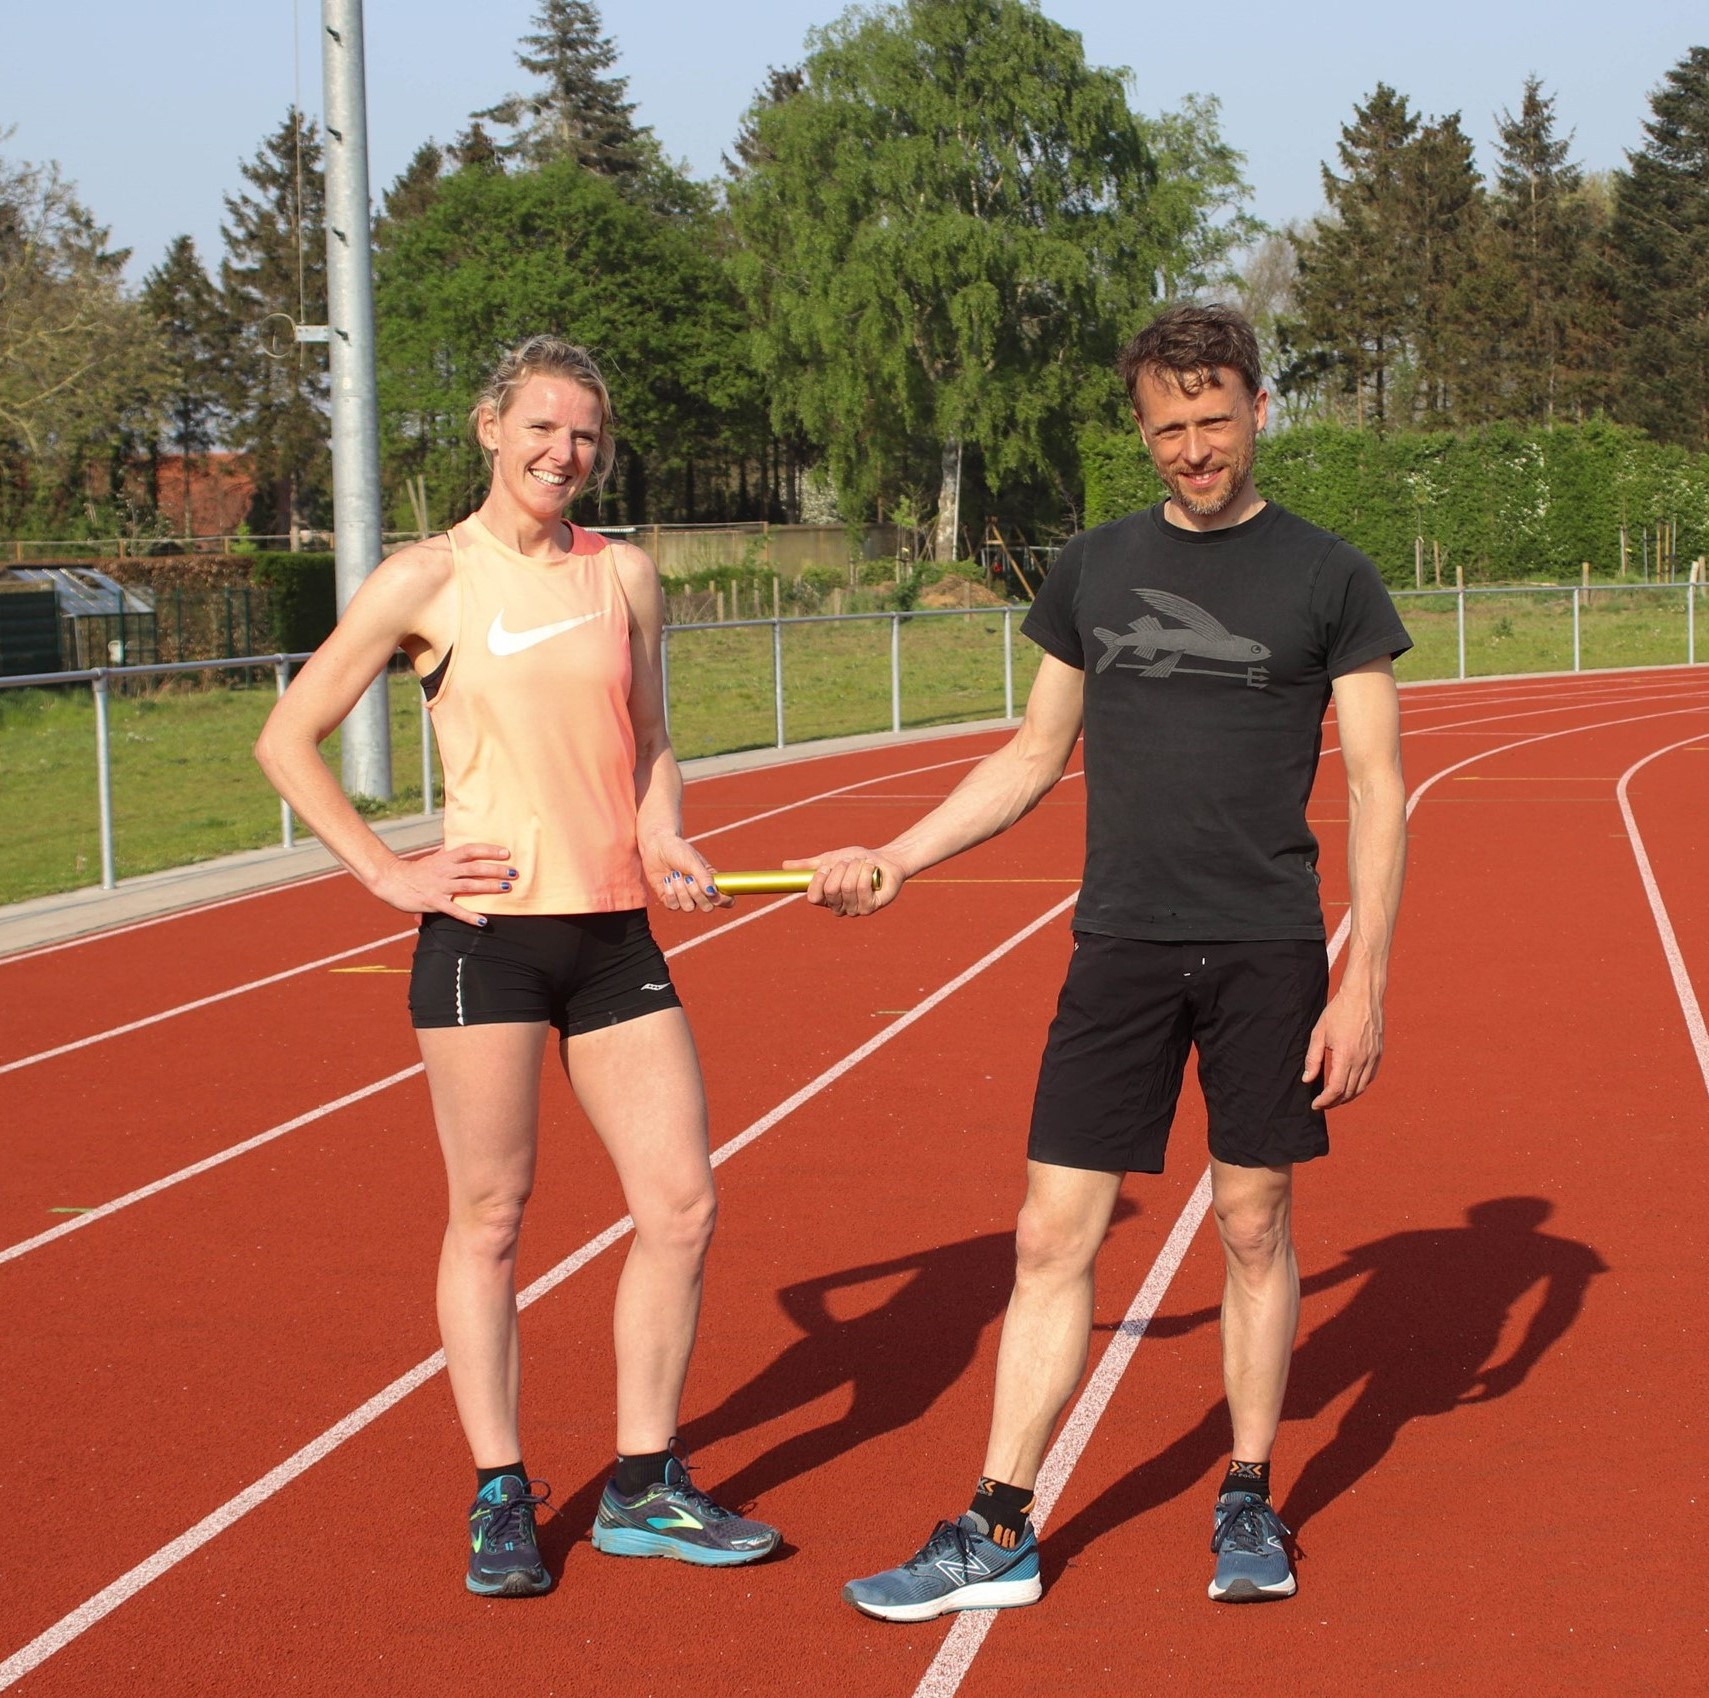 Atletiek en jogging in Beernem